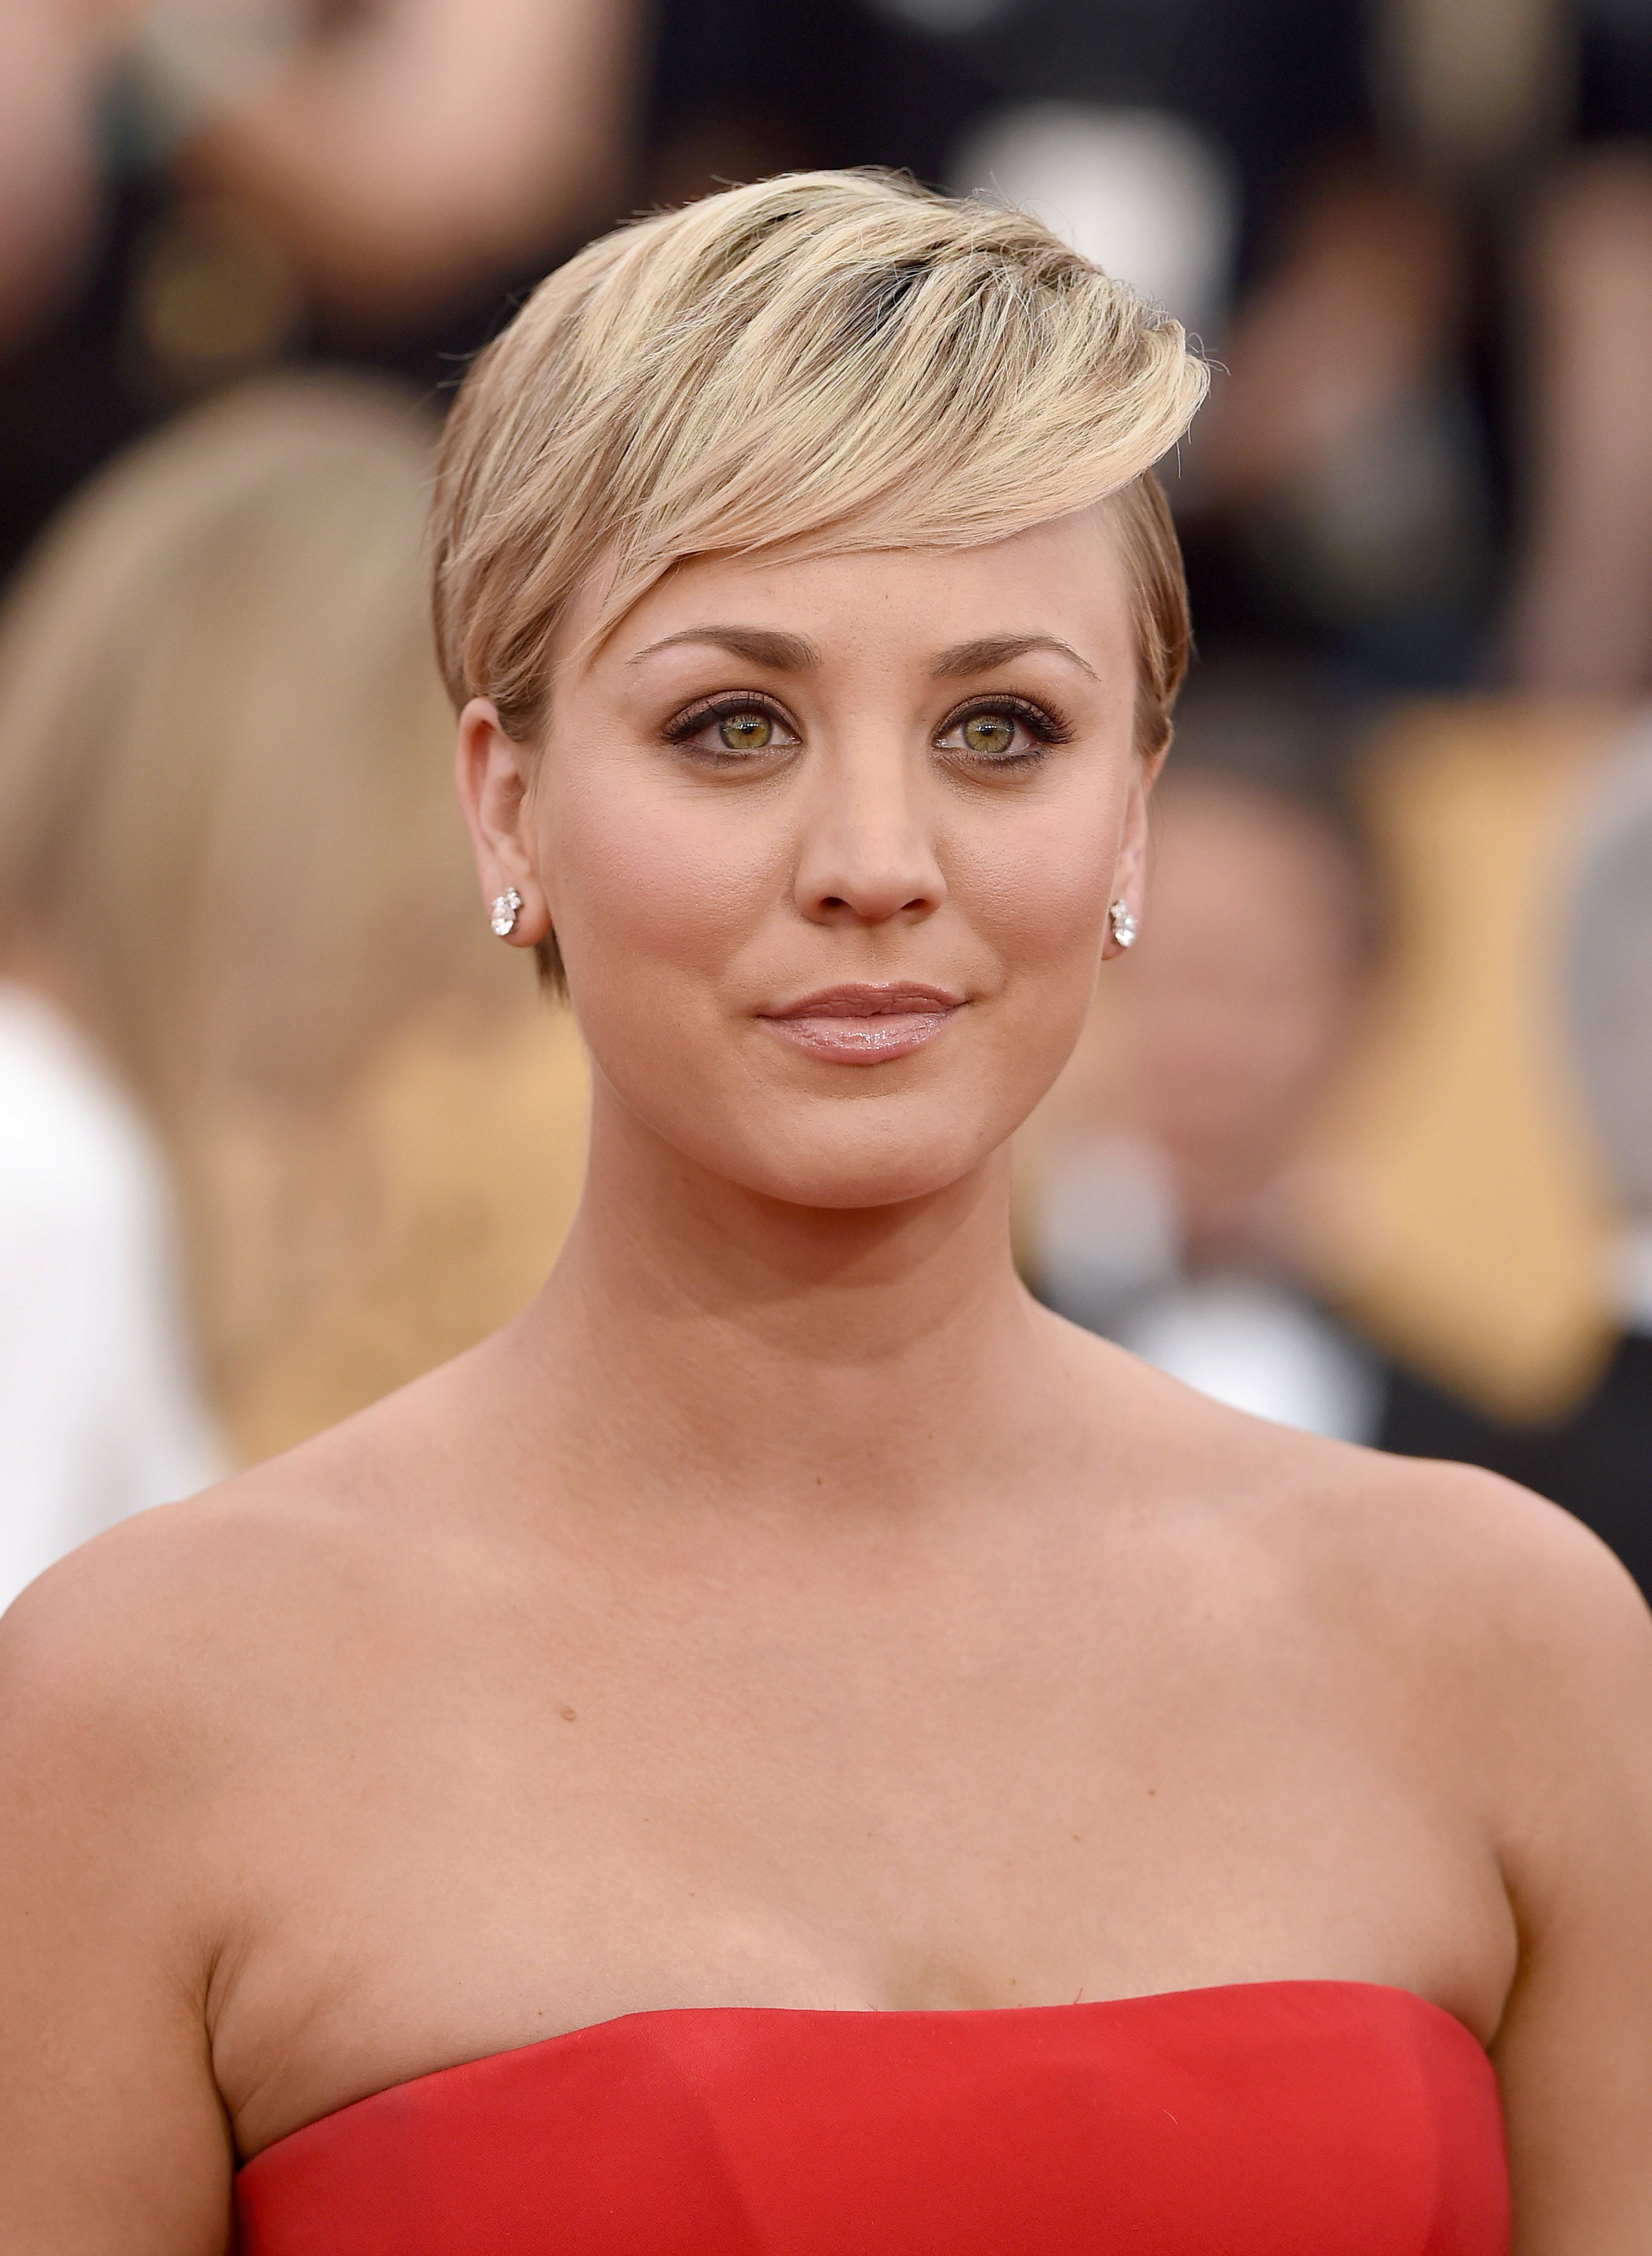 40 Best Short Pixie Cut Hairstyles 2018 – Cute Pixie Haircuts For Women Inside Ruffled Pixie Hairstyles (View 10 of 20)